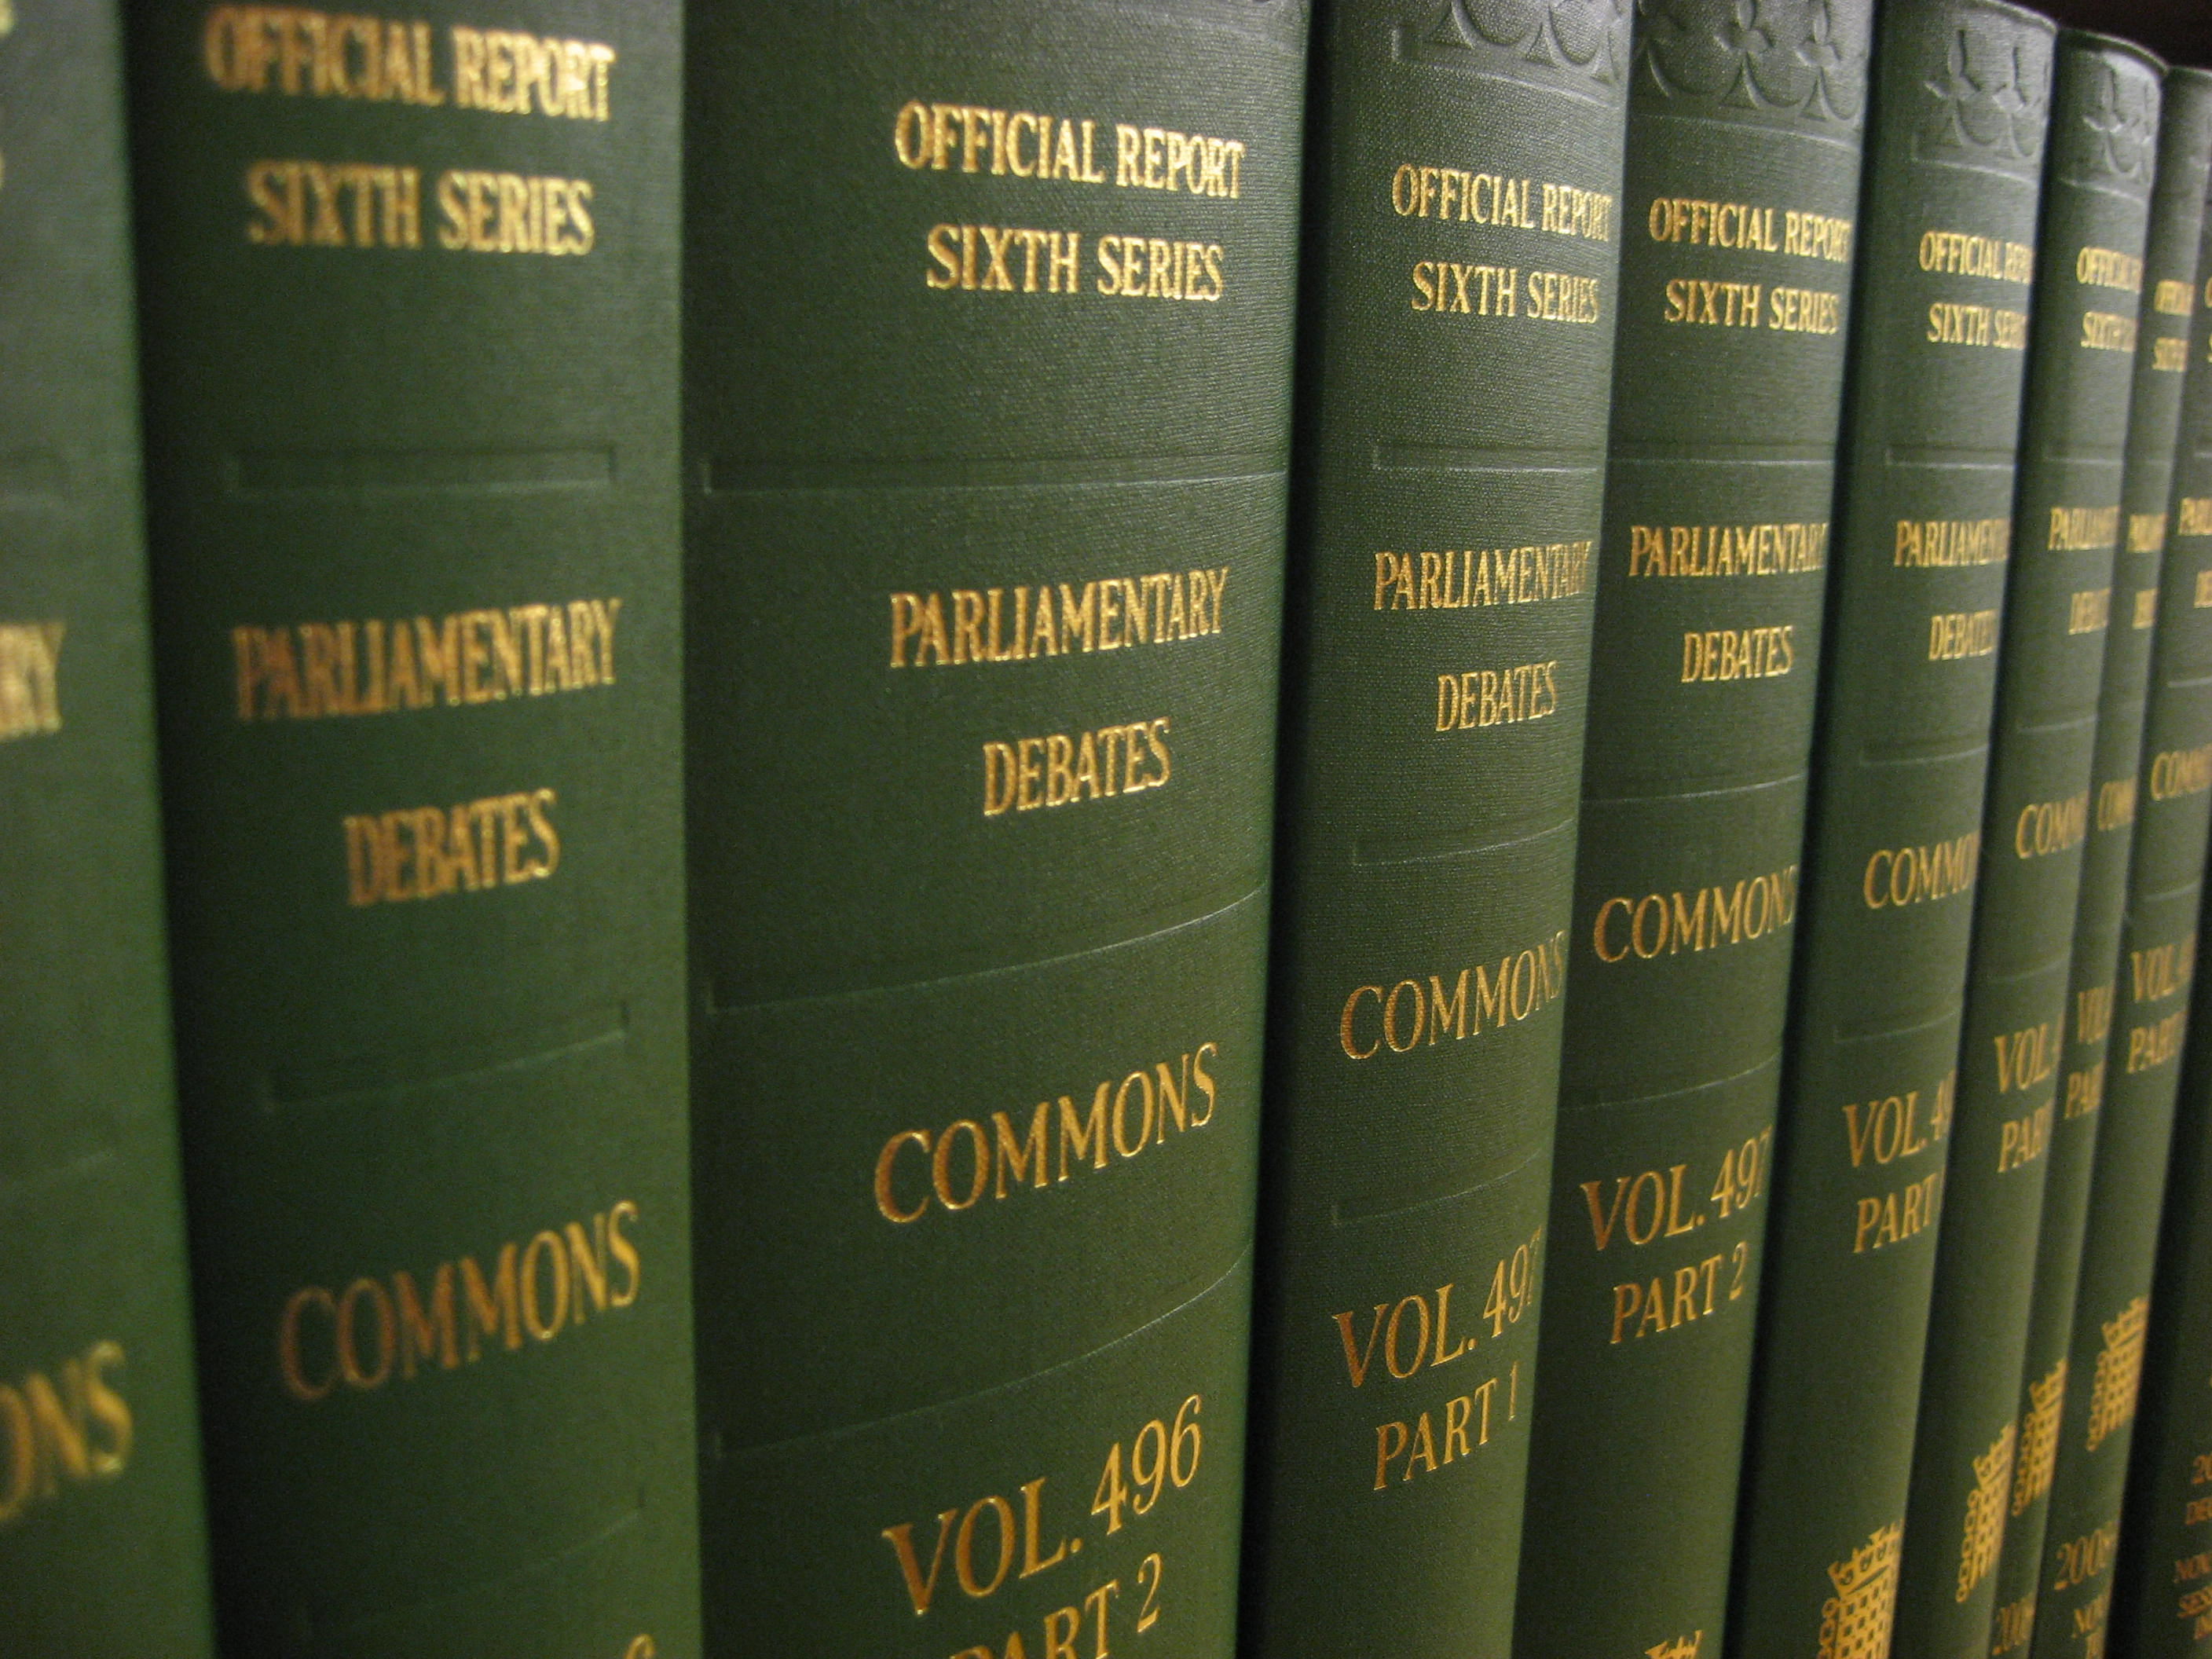 Image shows House of Commons bound volumes on a book shelf